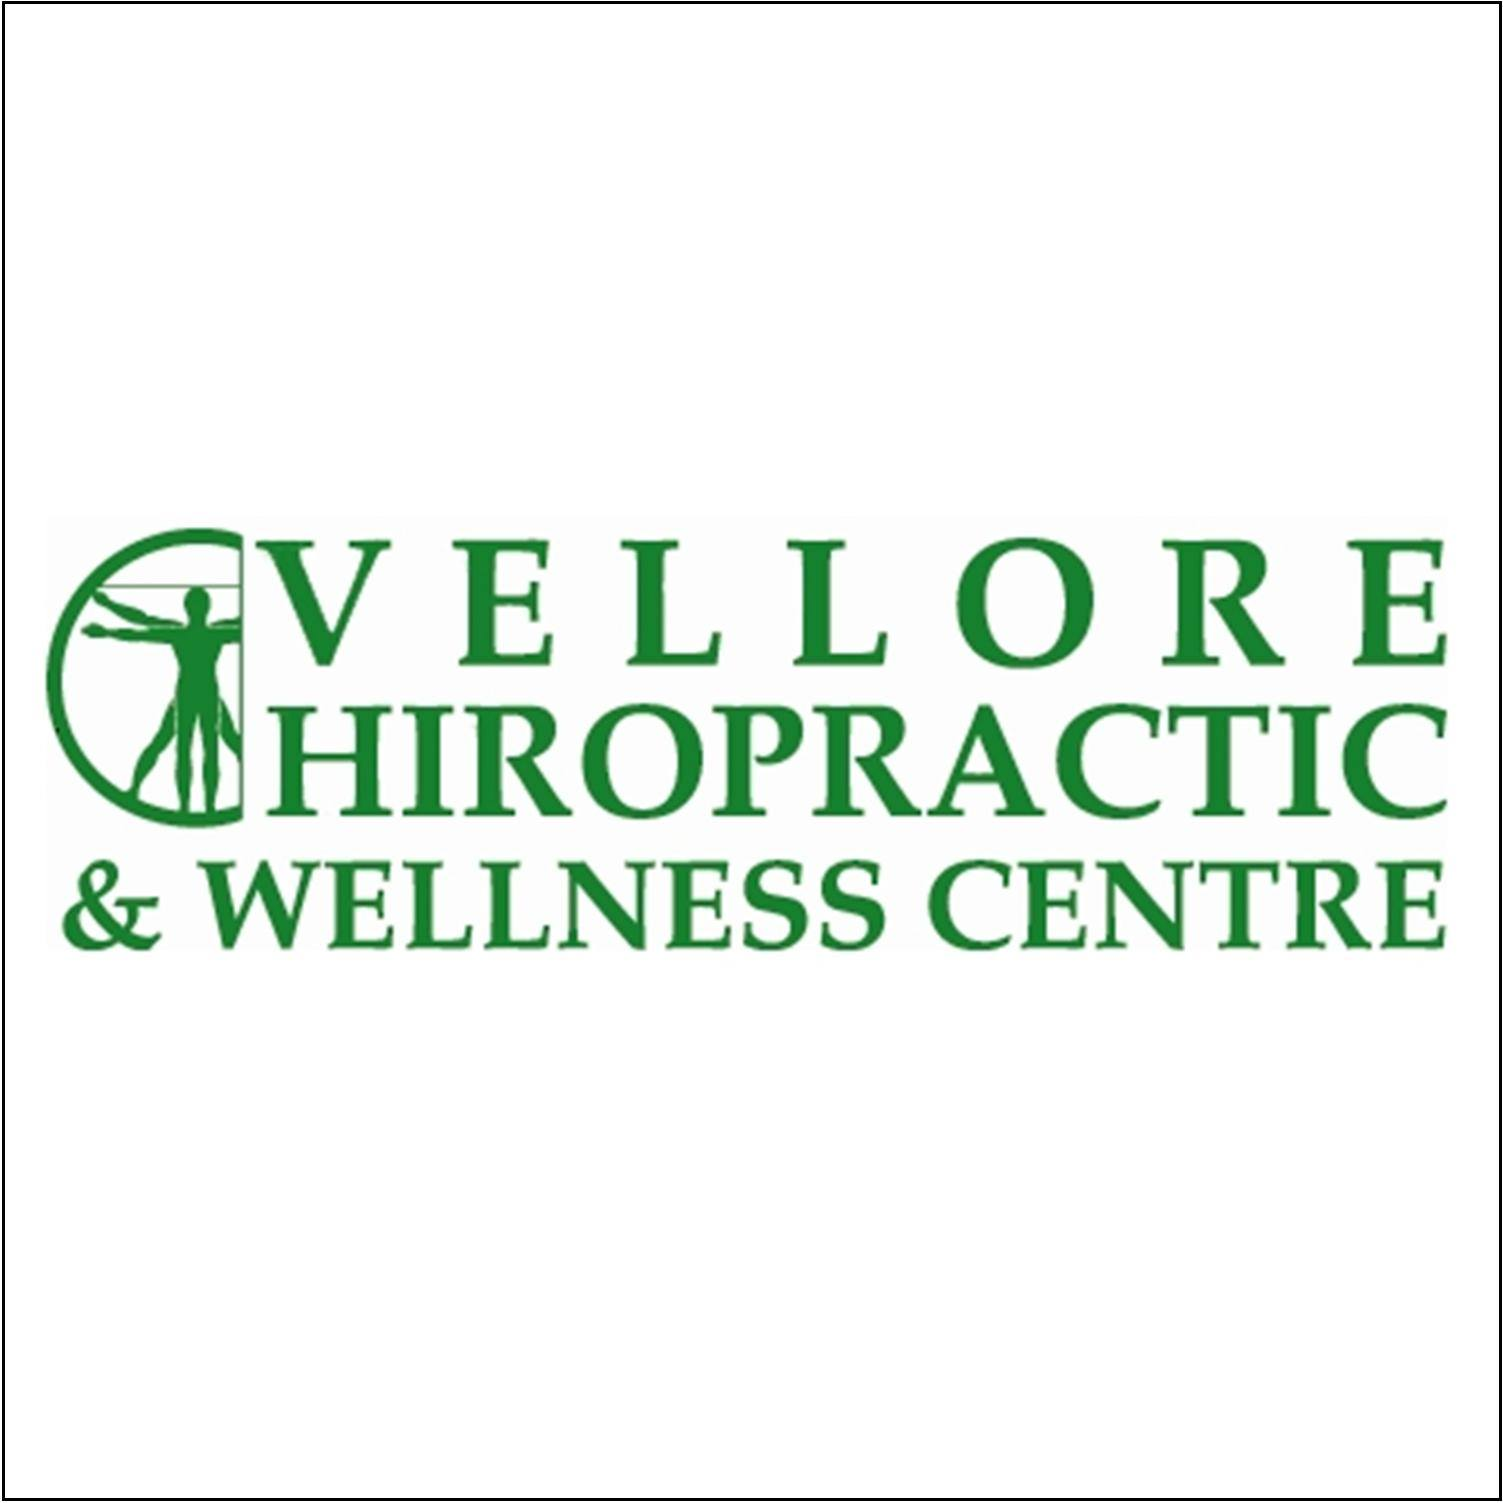 Vellore Chiropractic & Wellness Centre is The Preferred Chiropractic & Wellness Centre in Vaughan, Ontario, Canada